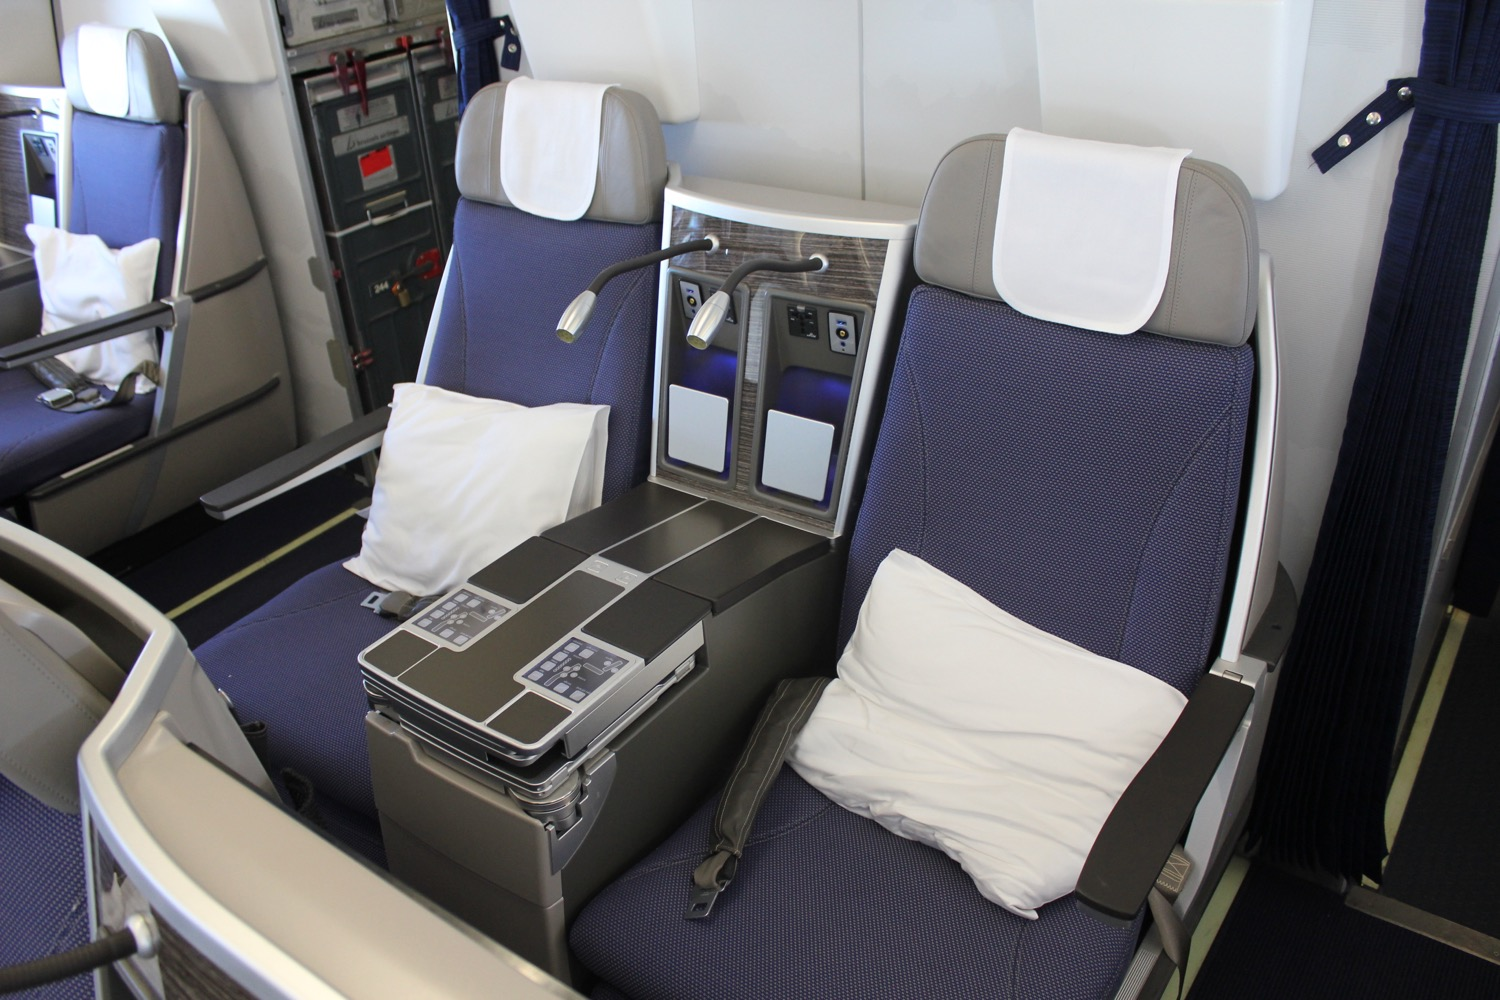 Brussels Airlines A330 Business Class Review - 4